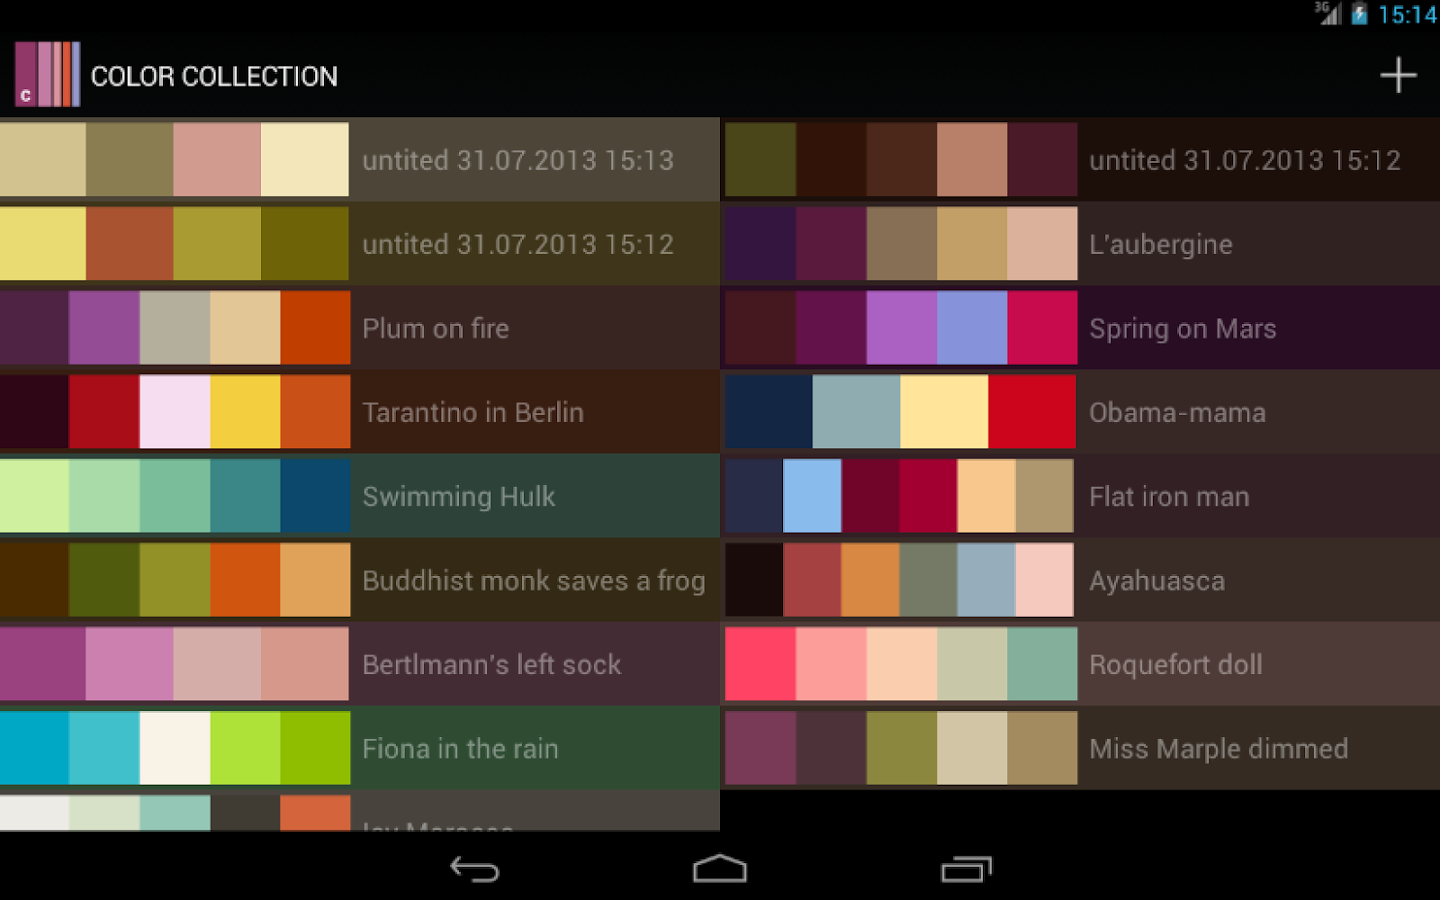 Game color theory - Color Collection Palettes Screenshot